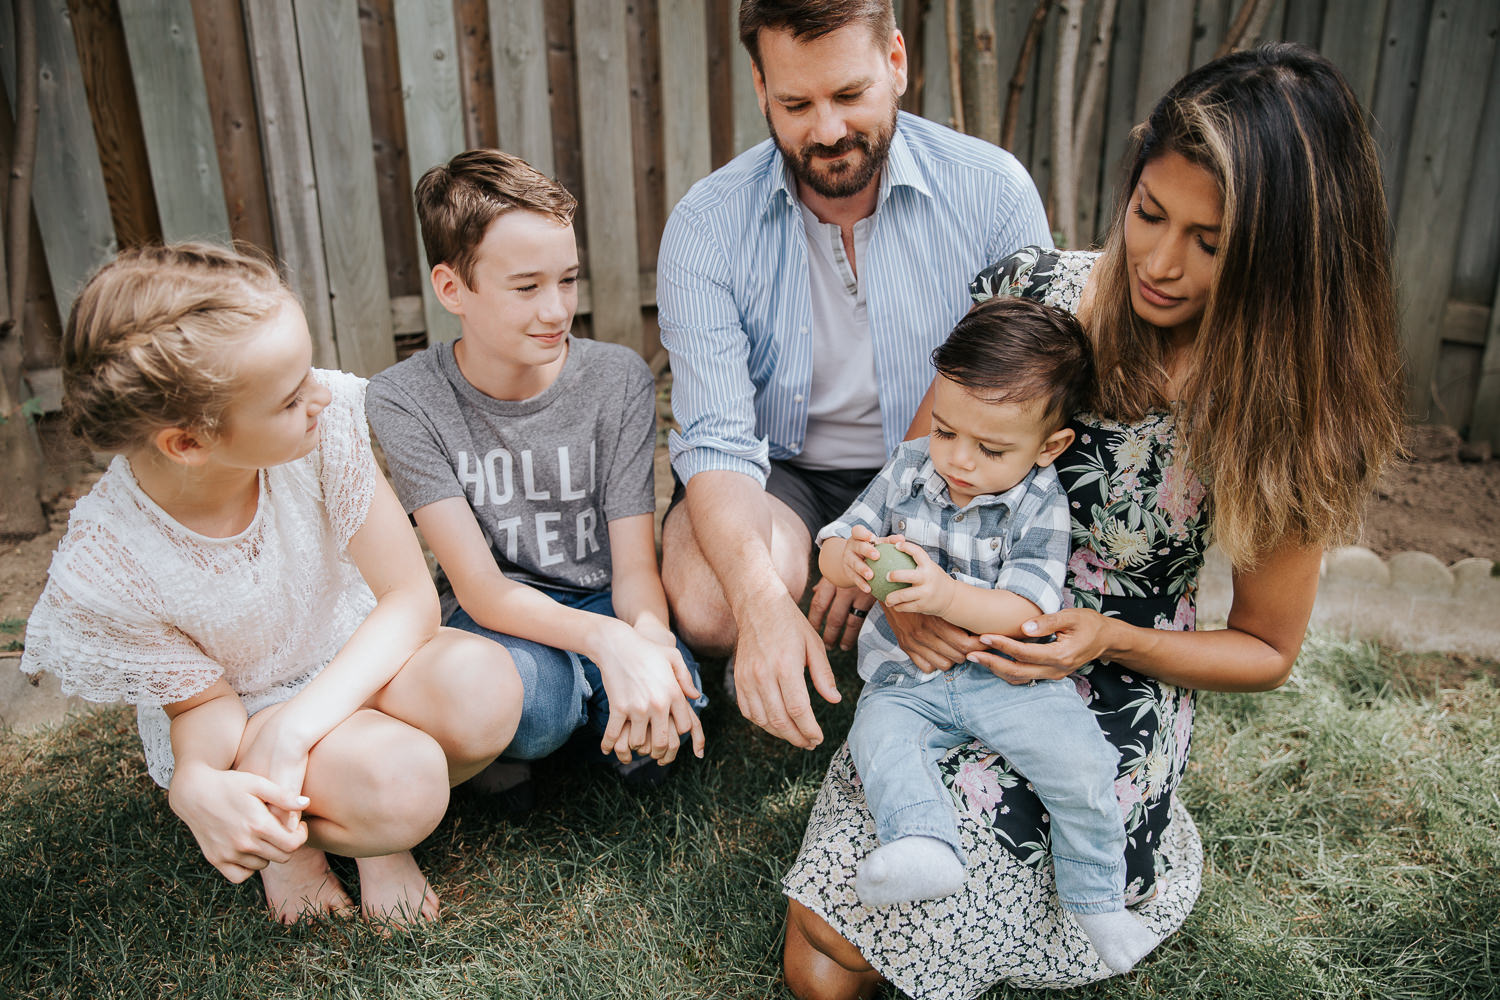 family of 5 in backyard sitting on grass, dad, brother and sister smiling at one year old baby boy sitting in mom' lap holding apple - Markham Lifestyle Photos